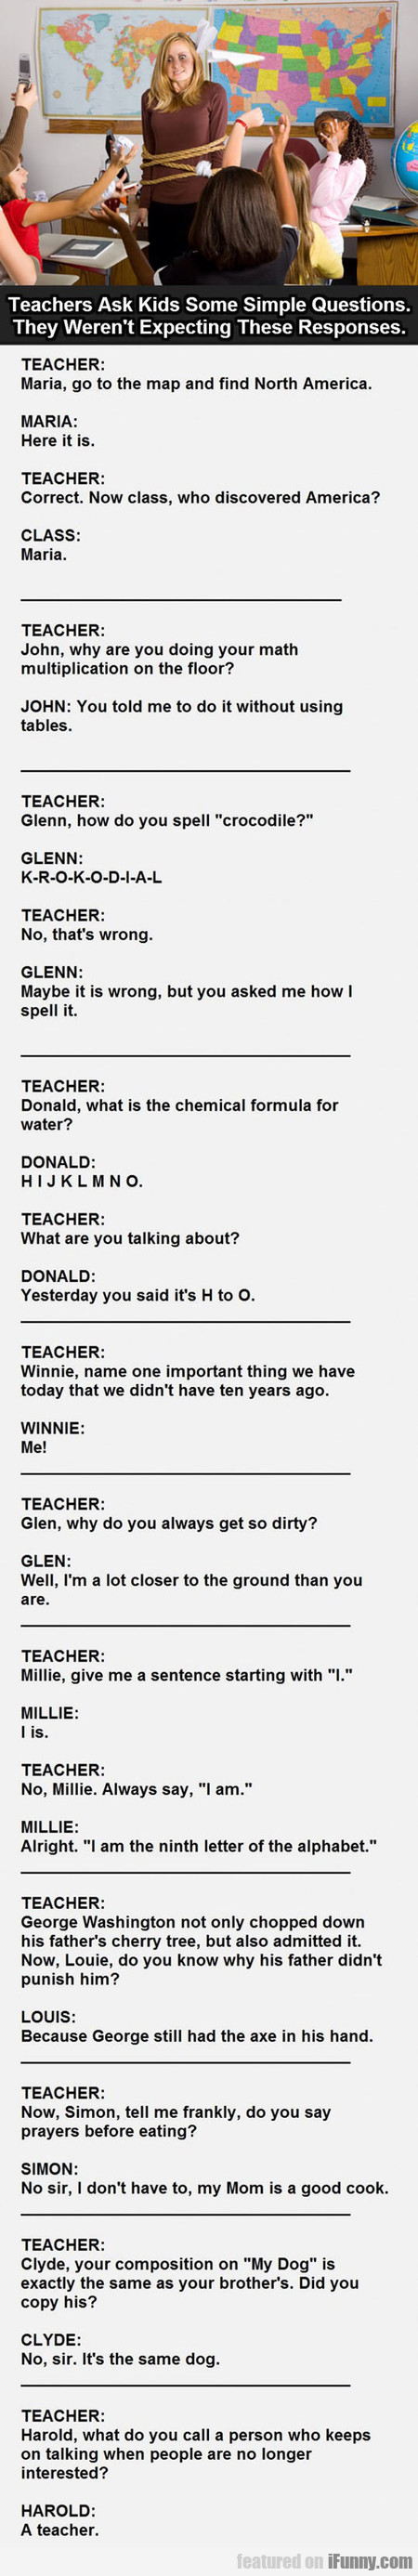 Teachers Ask Kids Some Simple Questions